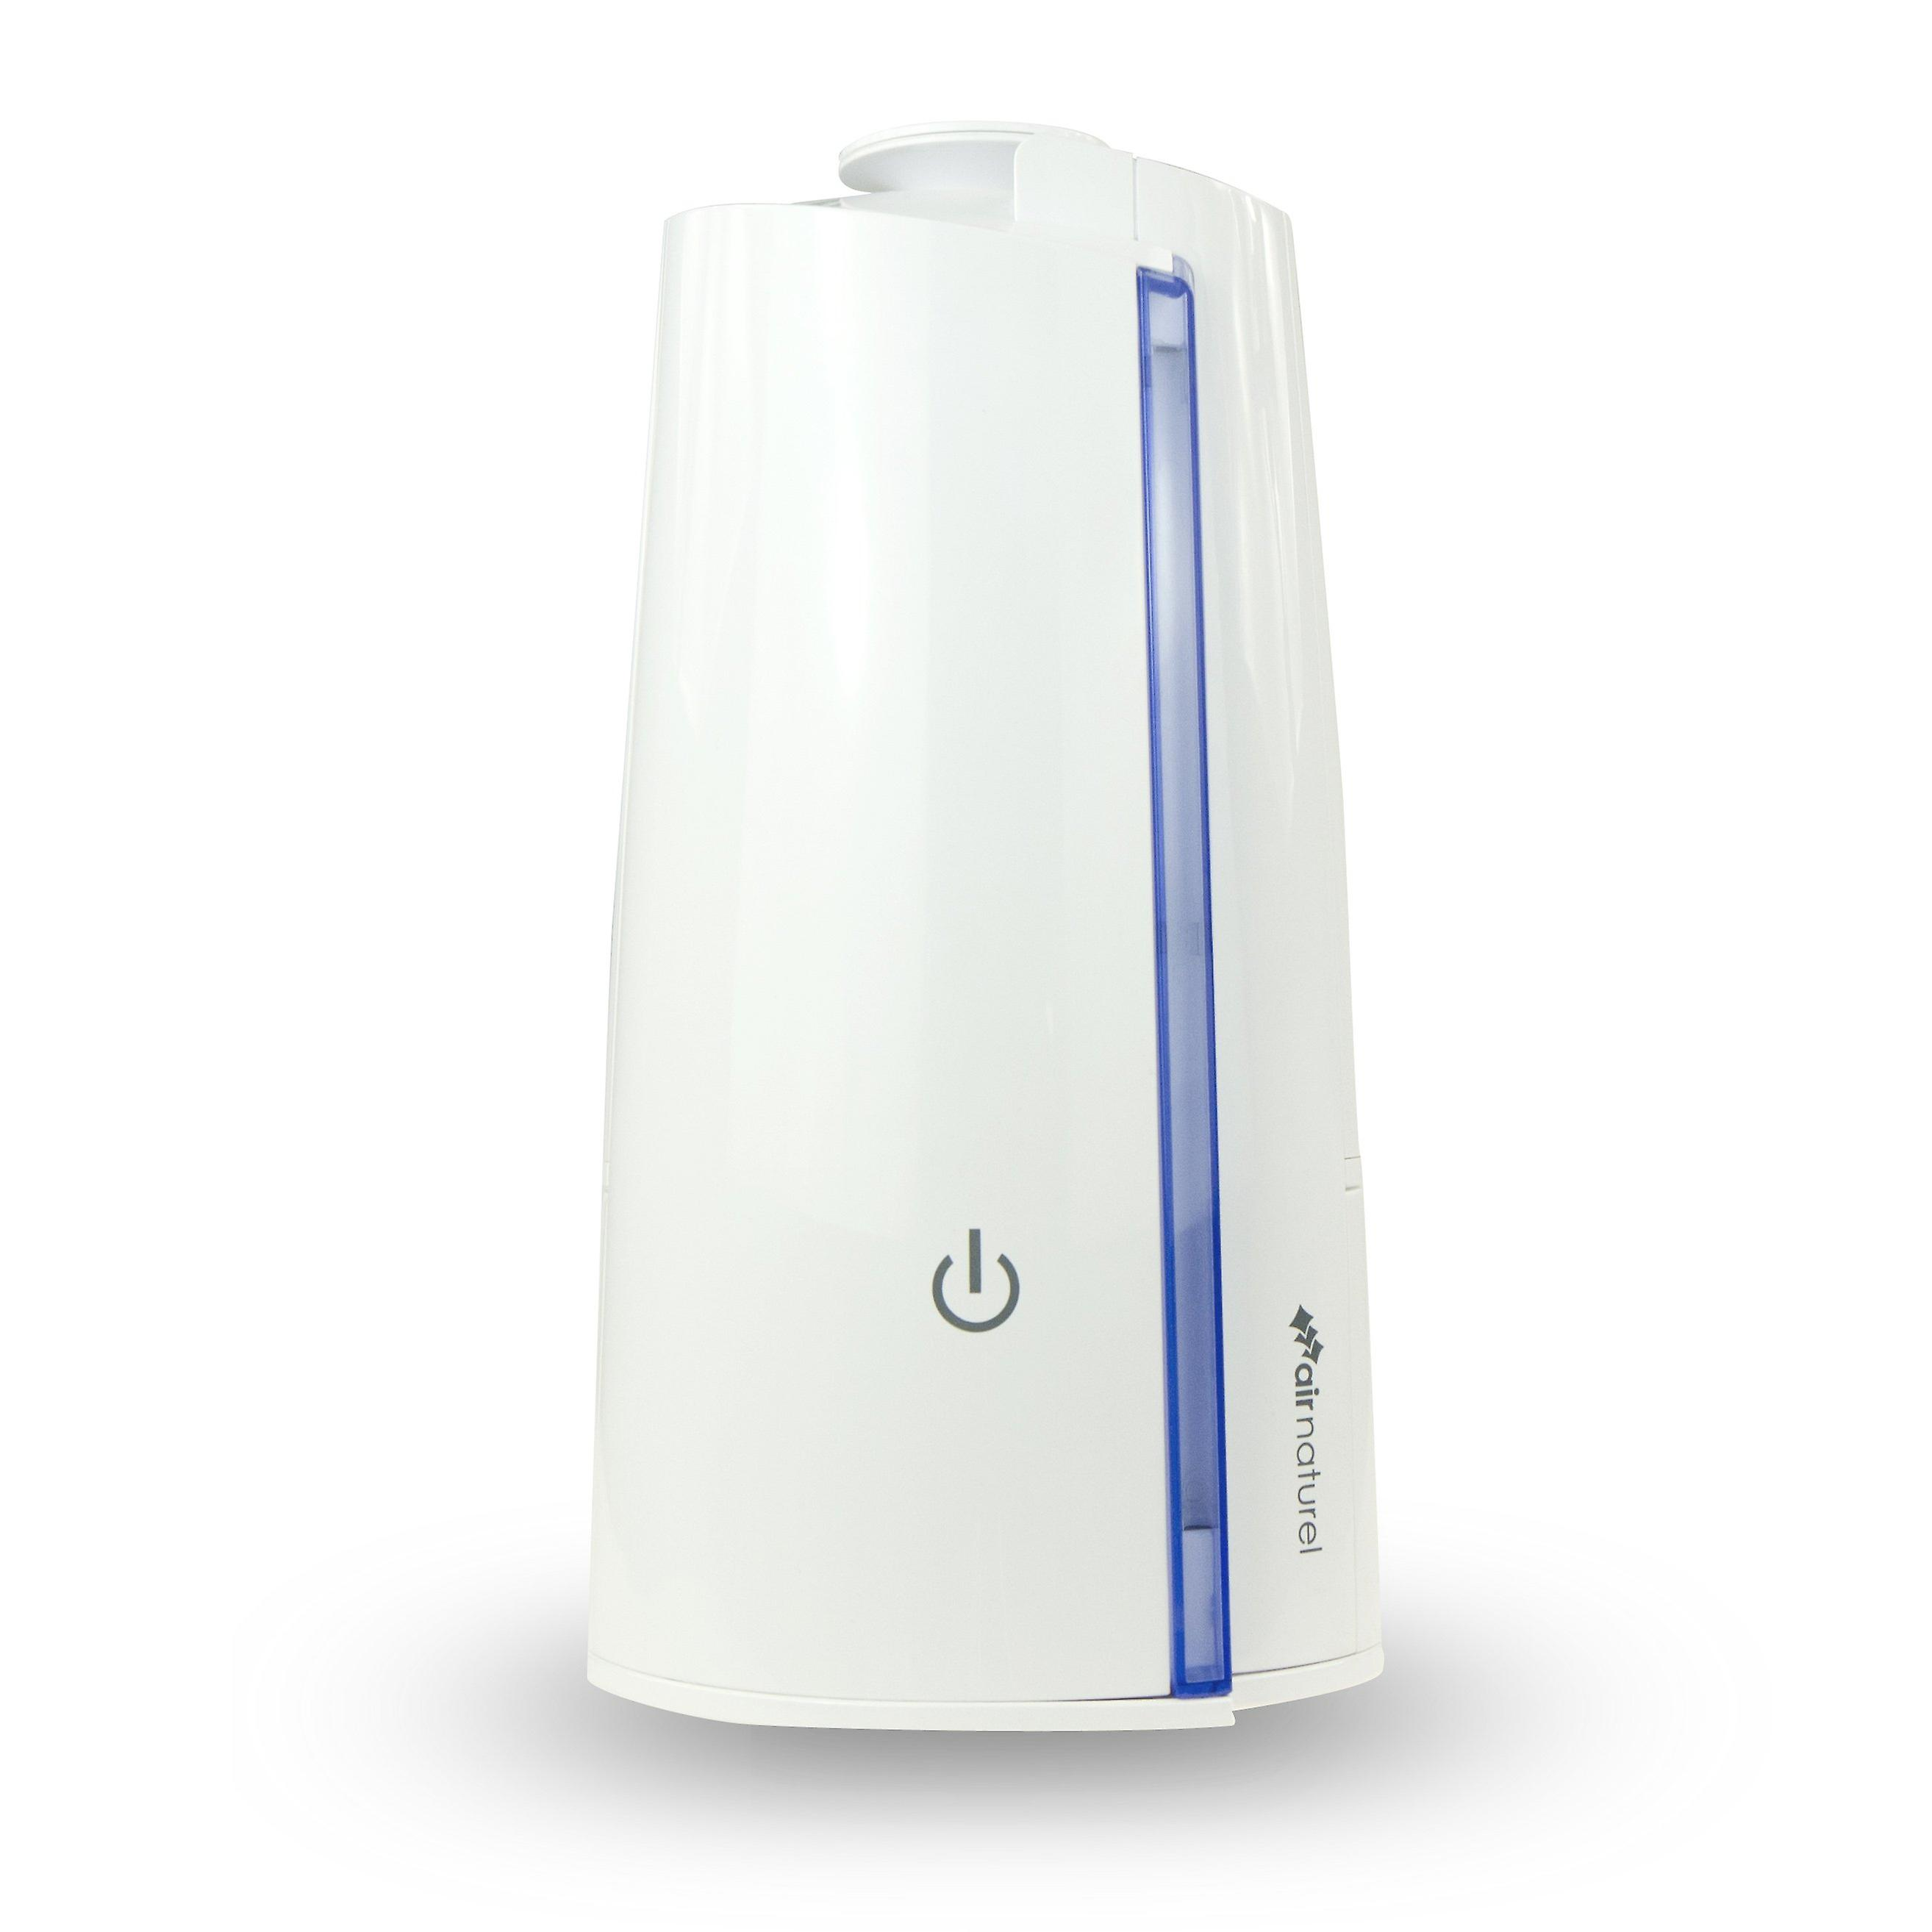 Airnaturel Humini-Ultrasonic Humidifier 15 m²/37.5 m³